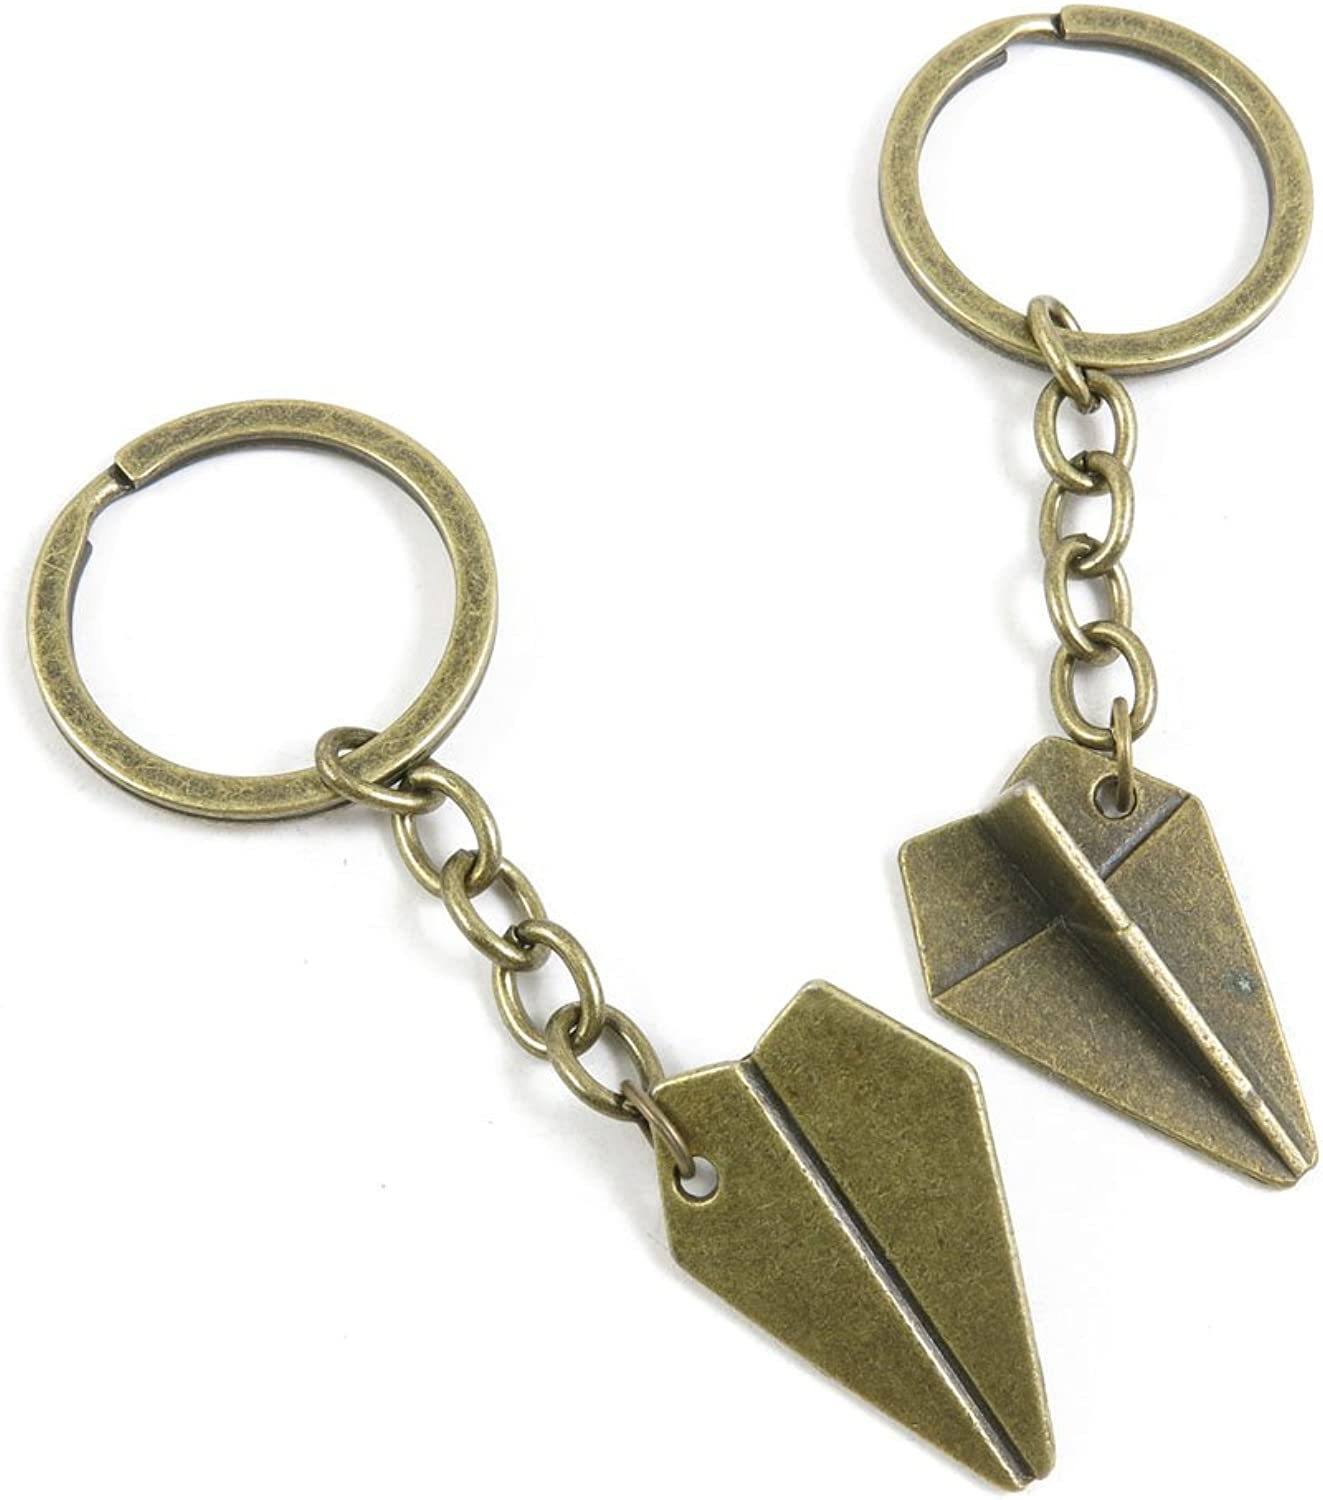 140 Pieces Fashion Jewelry Keyring Keychain Door Car Key Tag Ring Chain Supplier Supply Wholesale Bulk Lots R2NW2 Paper Airplane